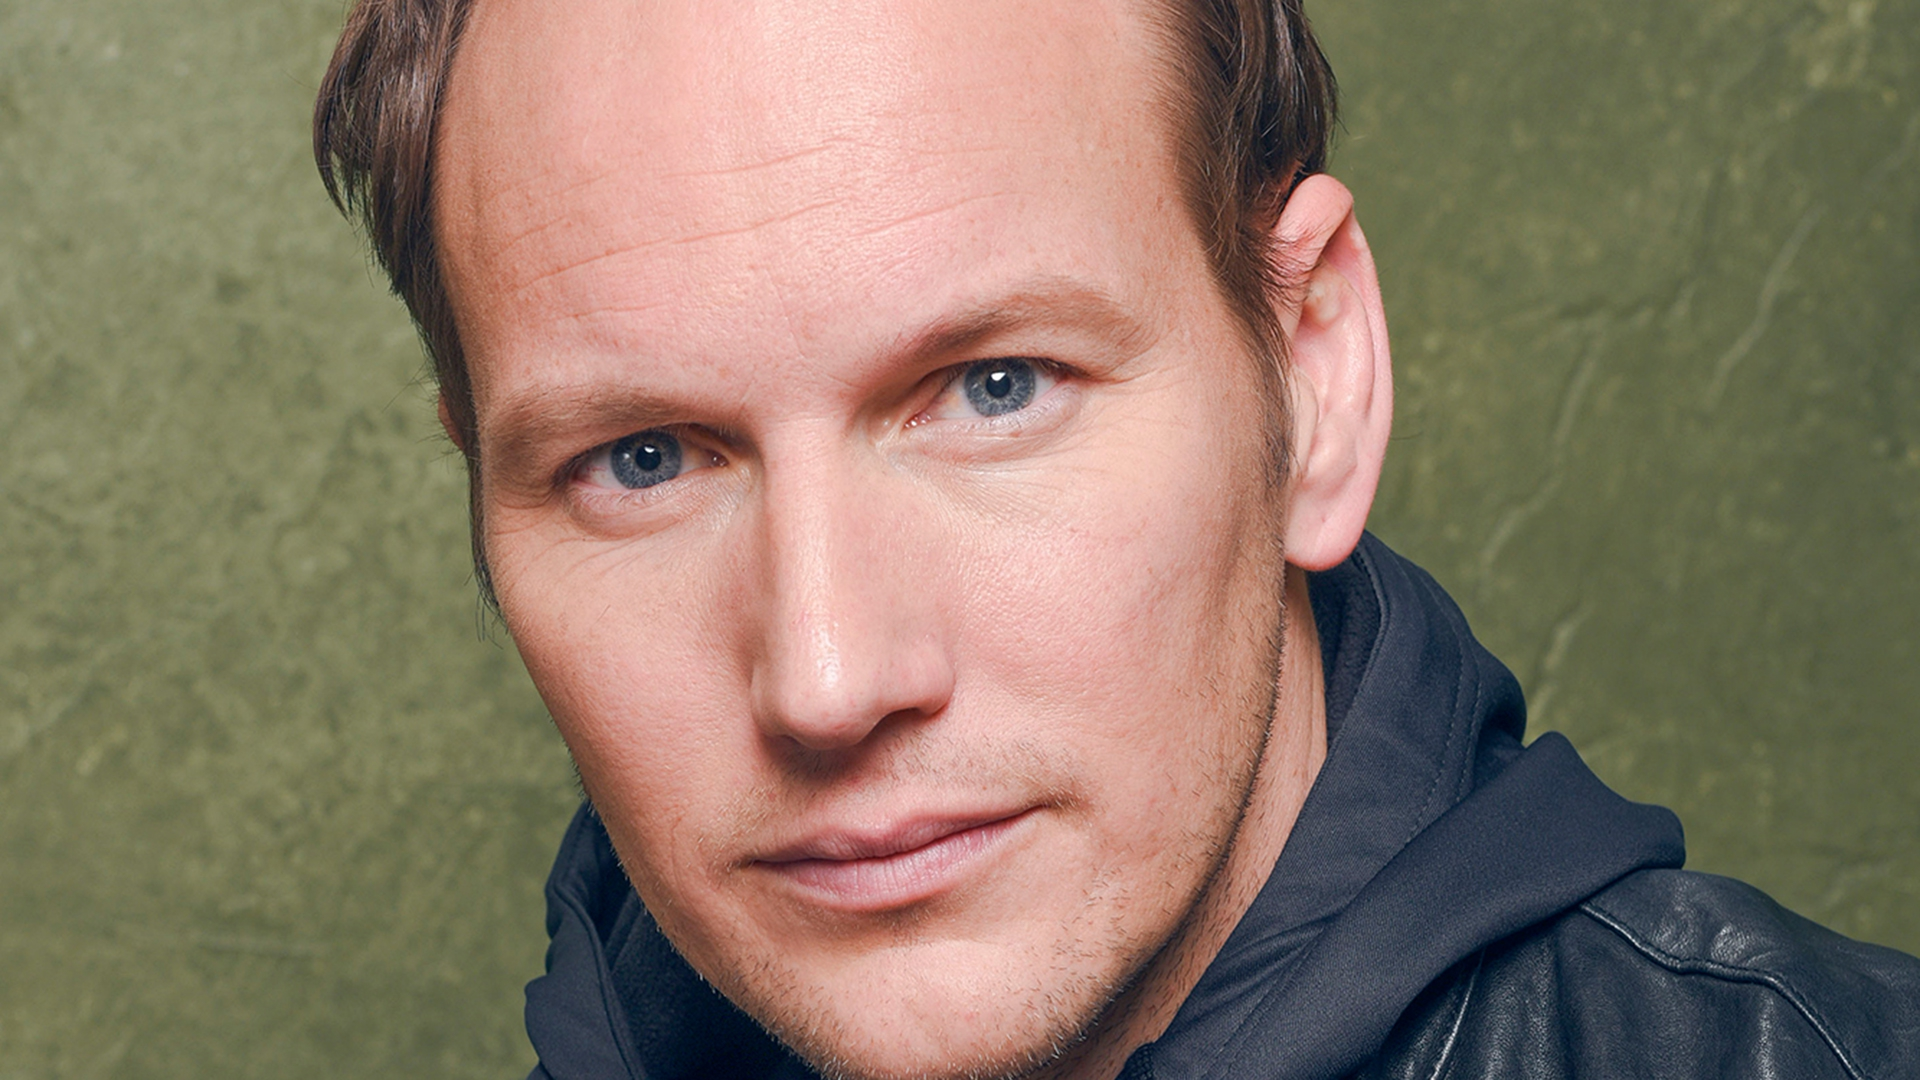 Animals Hd Wallpapers 1080p Patrick Wilson Wallpapers Hd Pictures Images High Quality